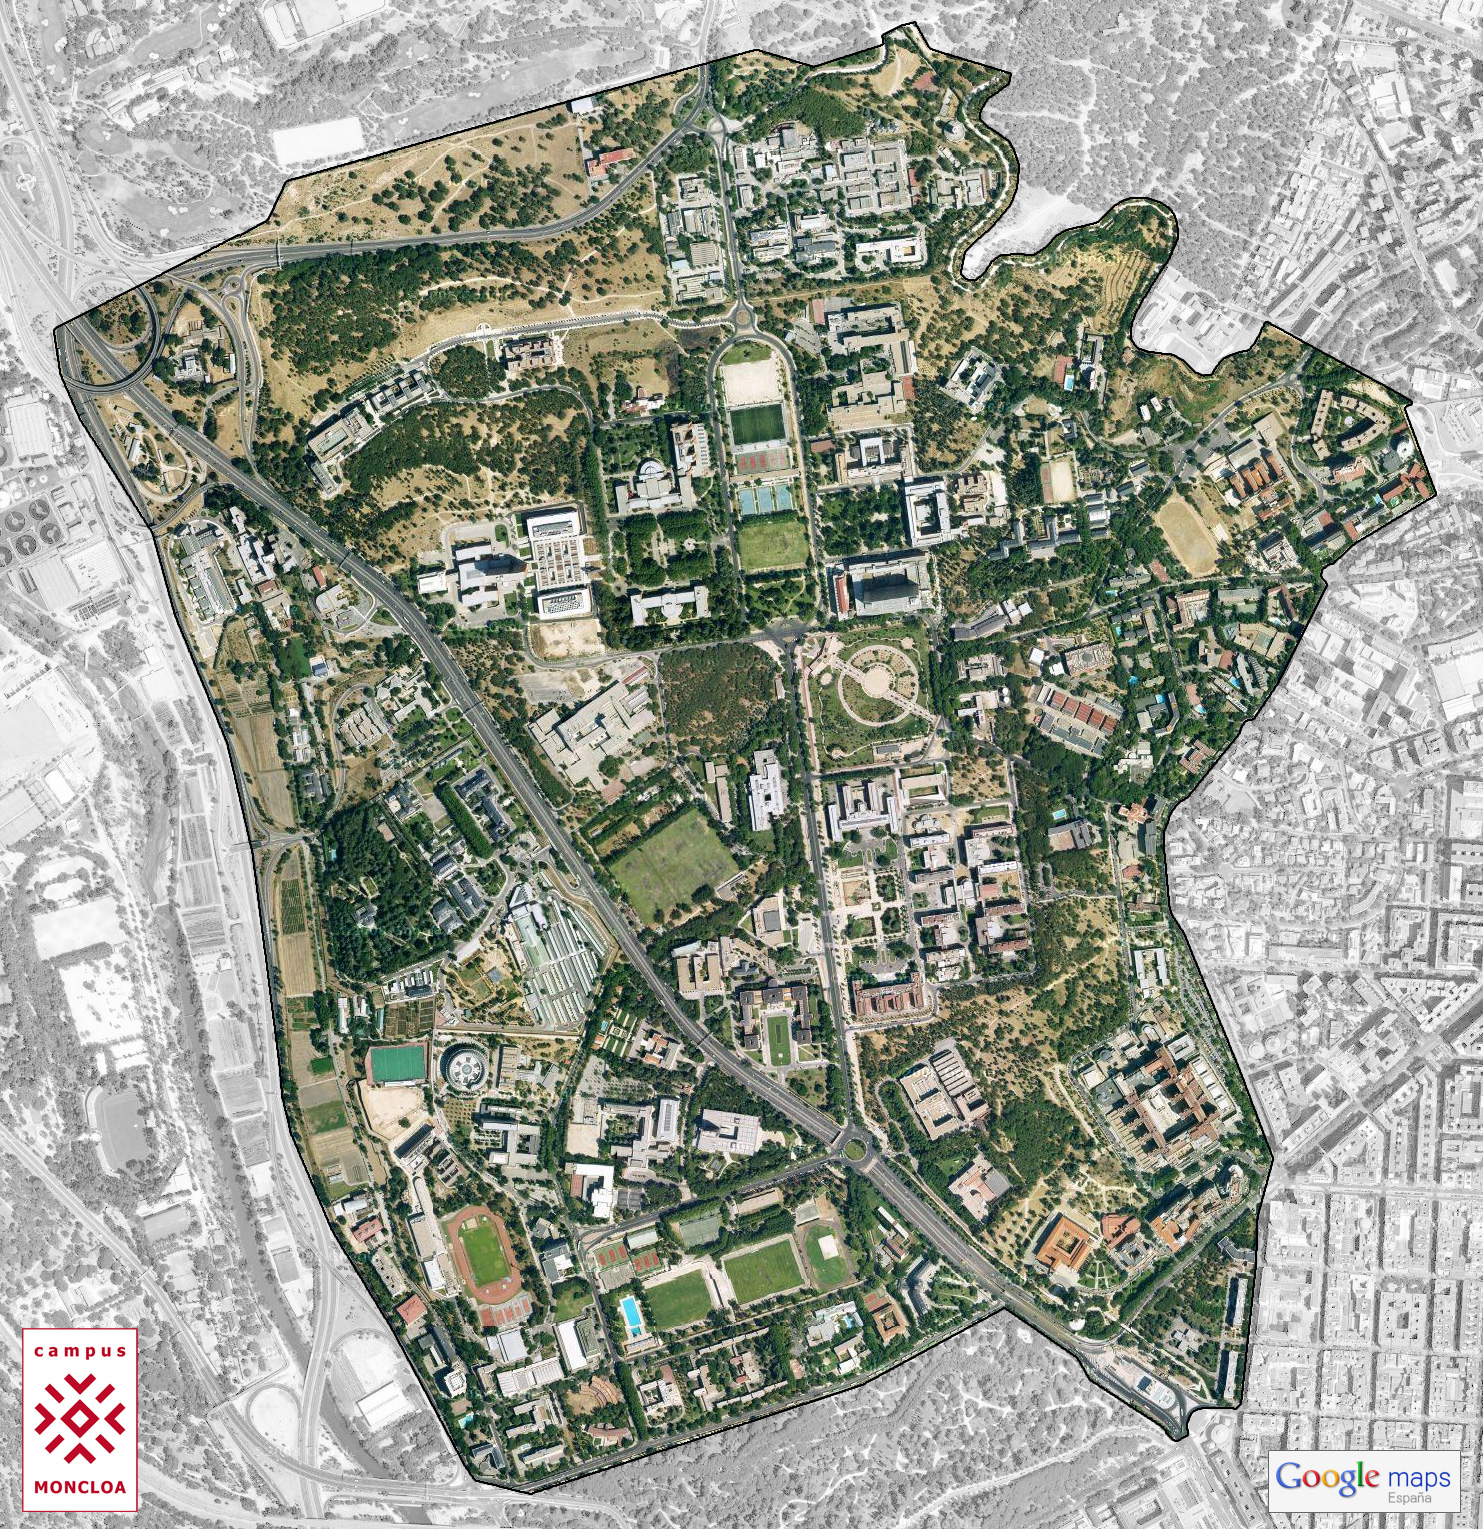 Campus Moncloa Map